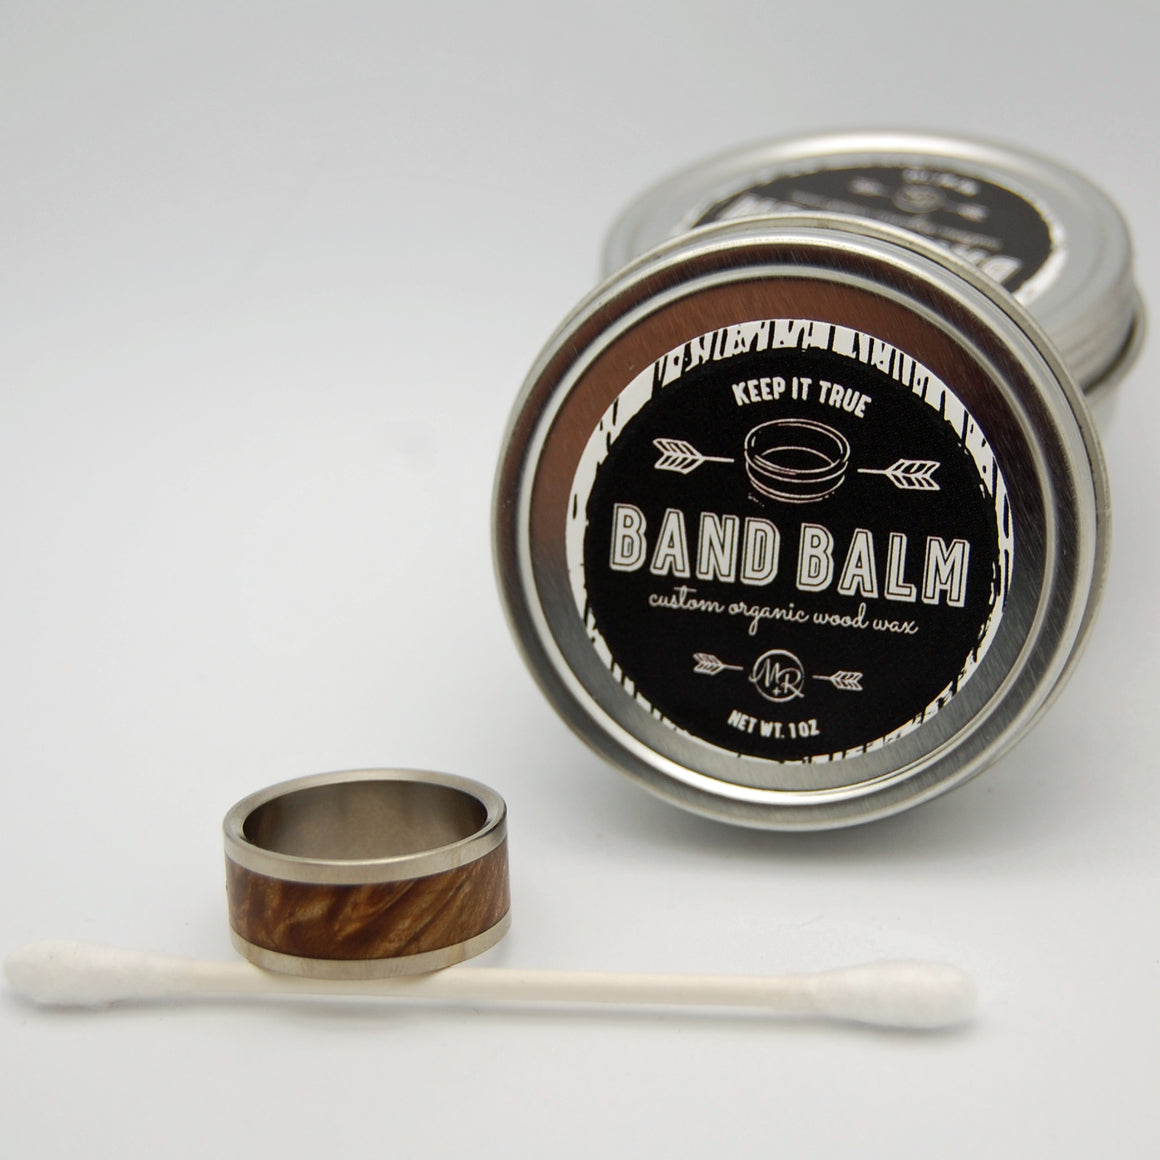 Band Balm - Custom Organic Ring Conditioner